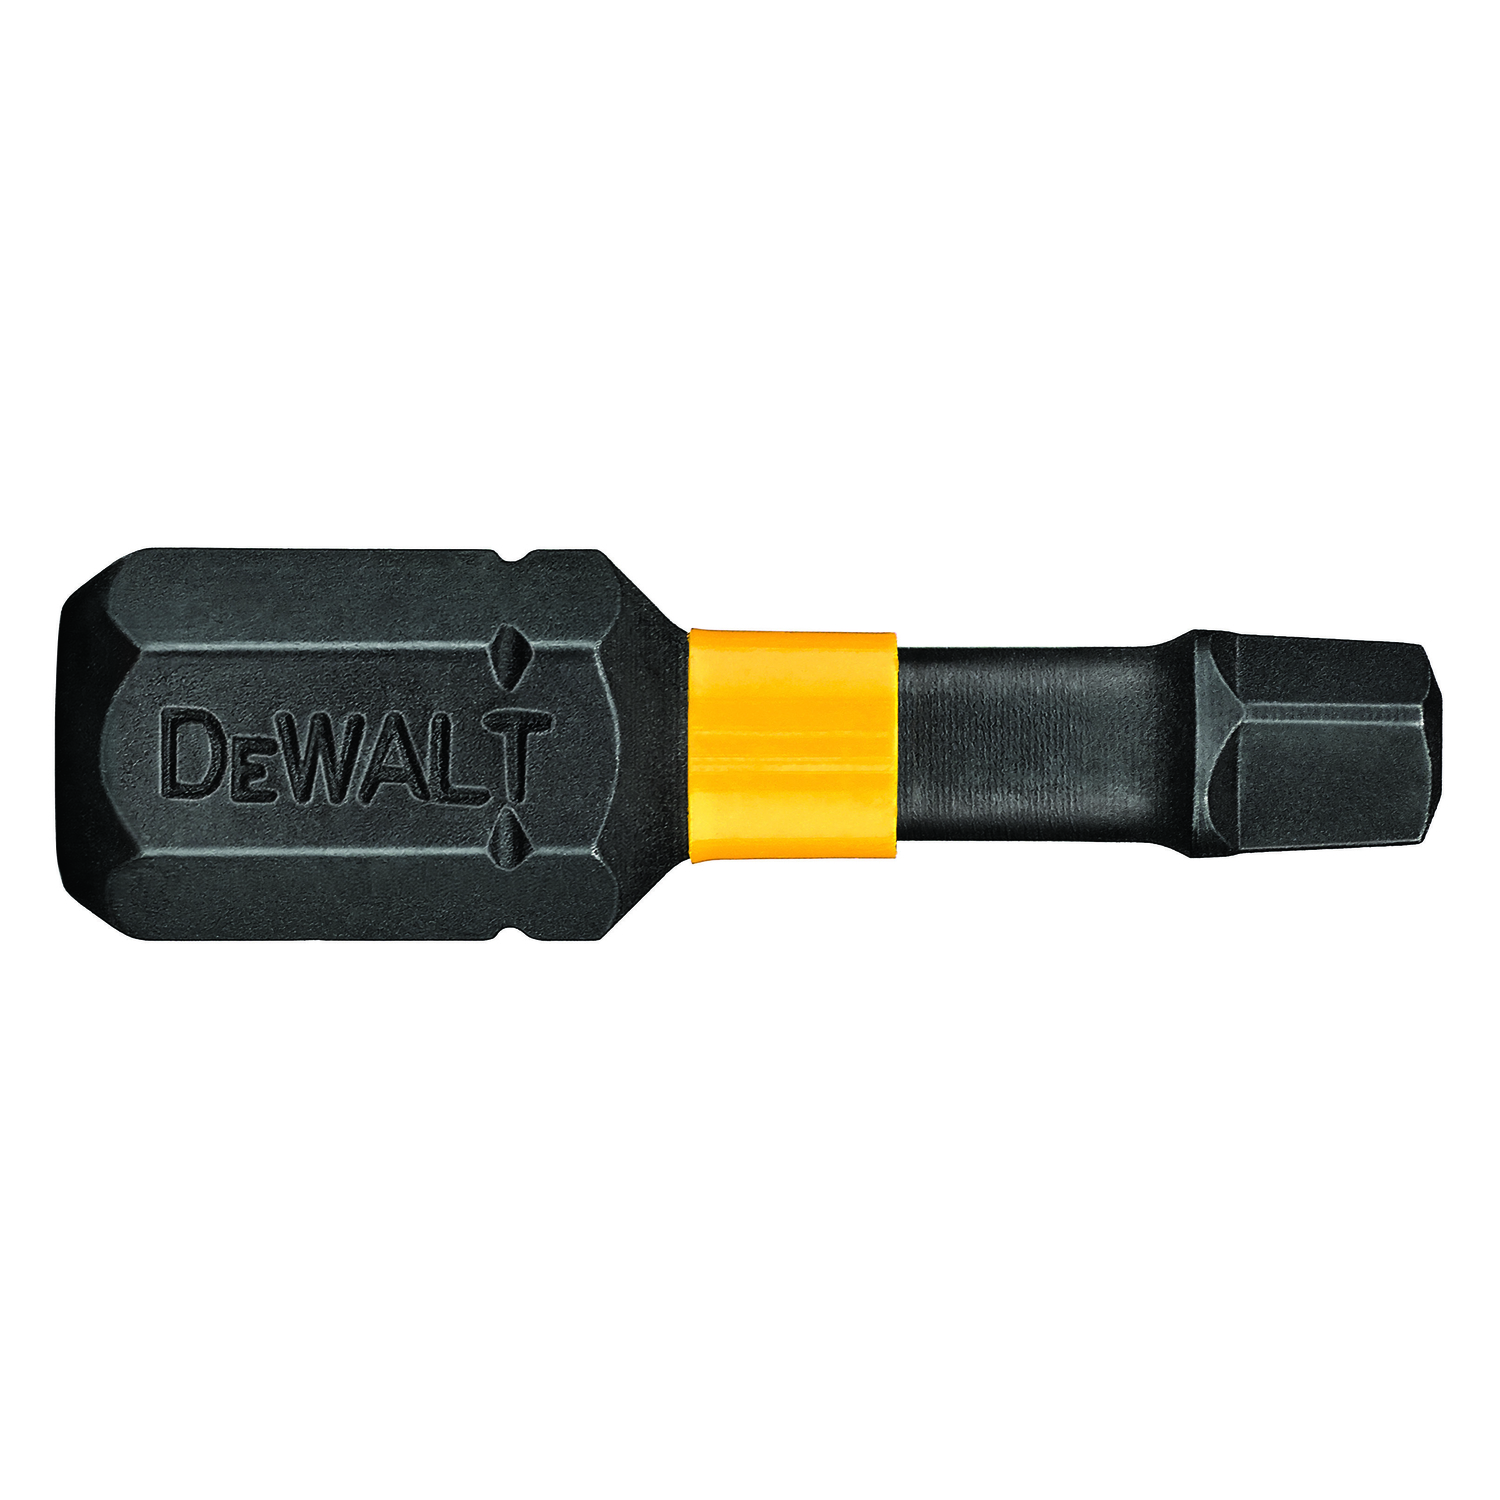 DeWalt  Impact Ready  Square  #1 in.  x 1 in. L Screwdriver Bit  1/4 in. Black Oxide  1 pc.